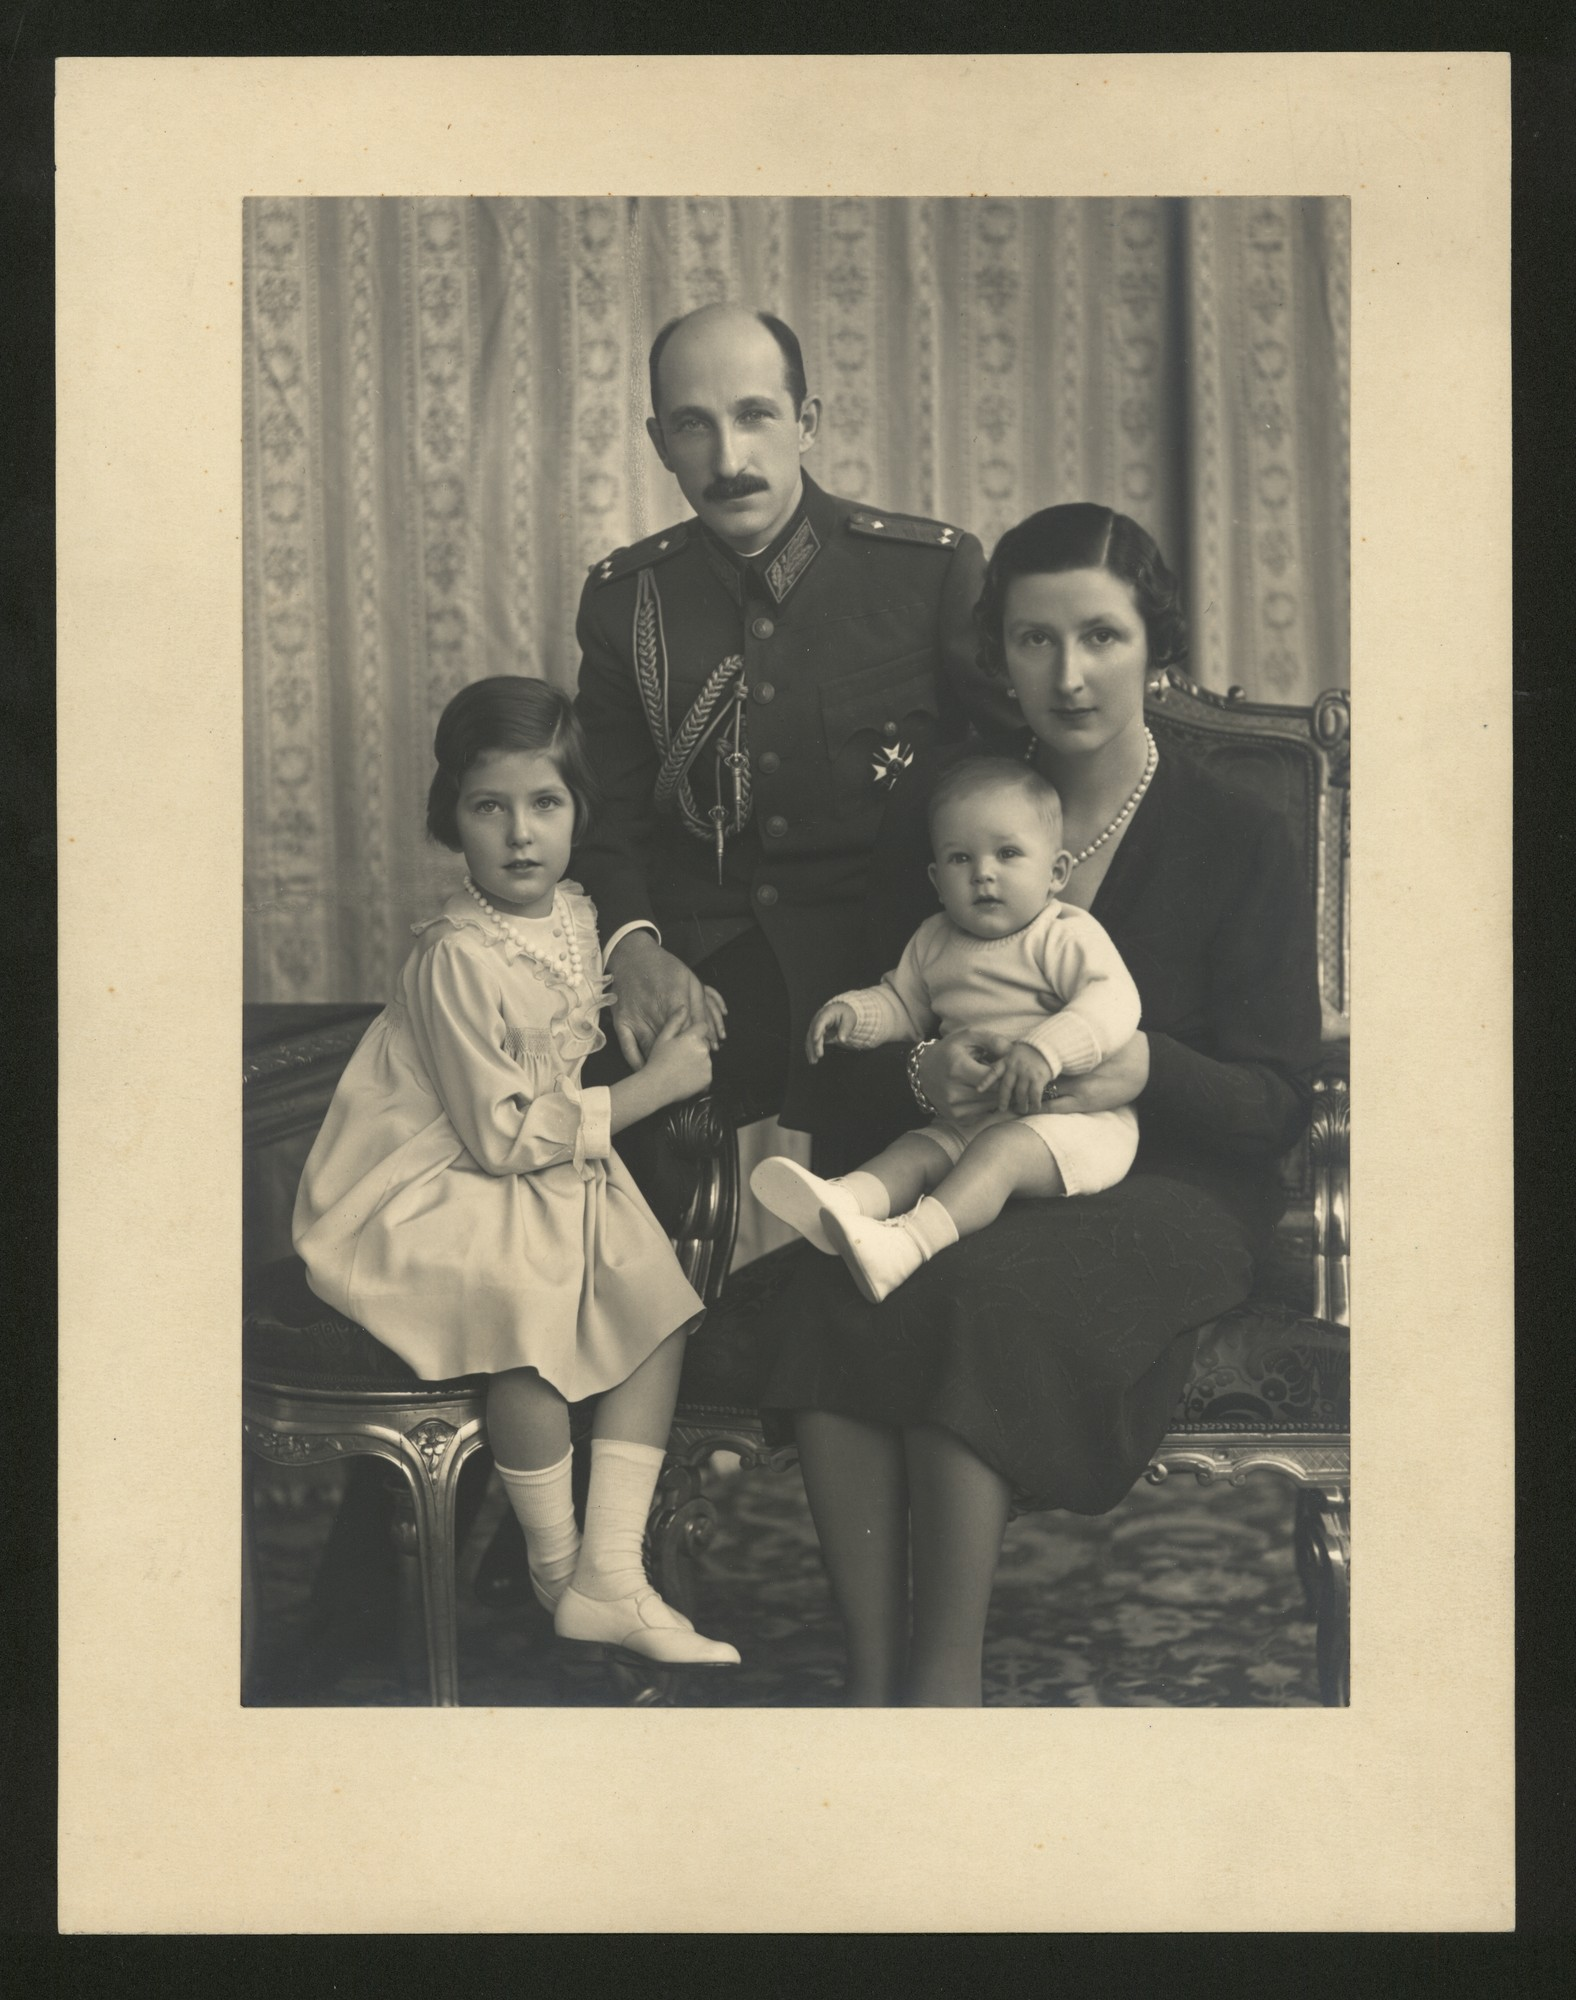 King (Tsar) Boris III and Quenn (Tsaritza) Giovanna di Savoia with their children Maria-Luisa and Simeon, © Central State Archives